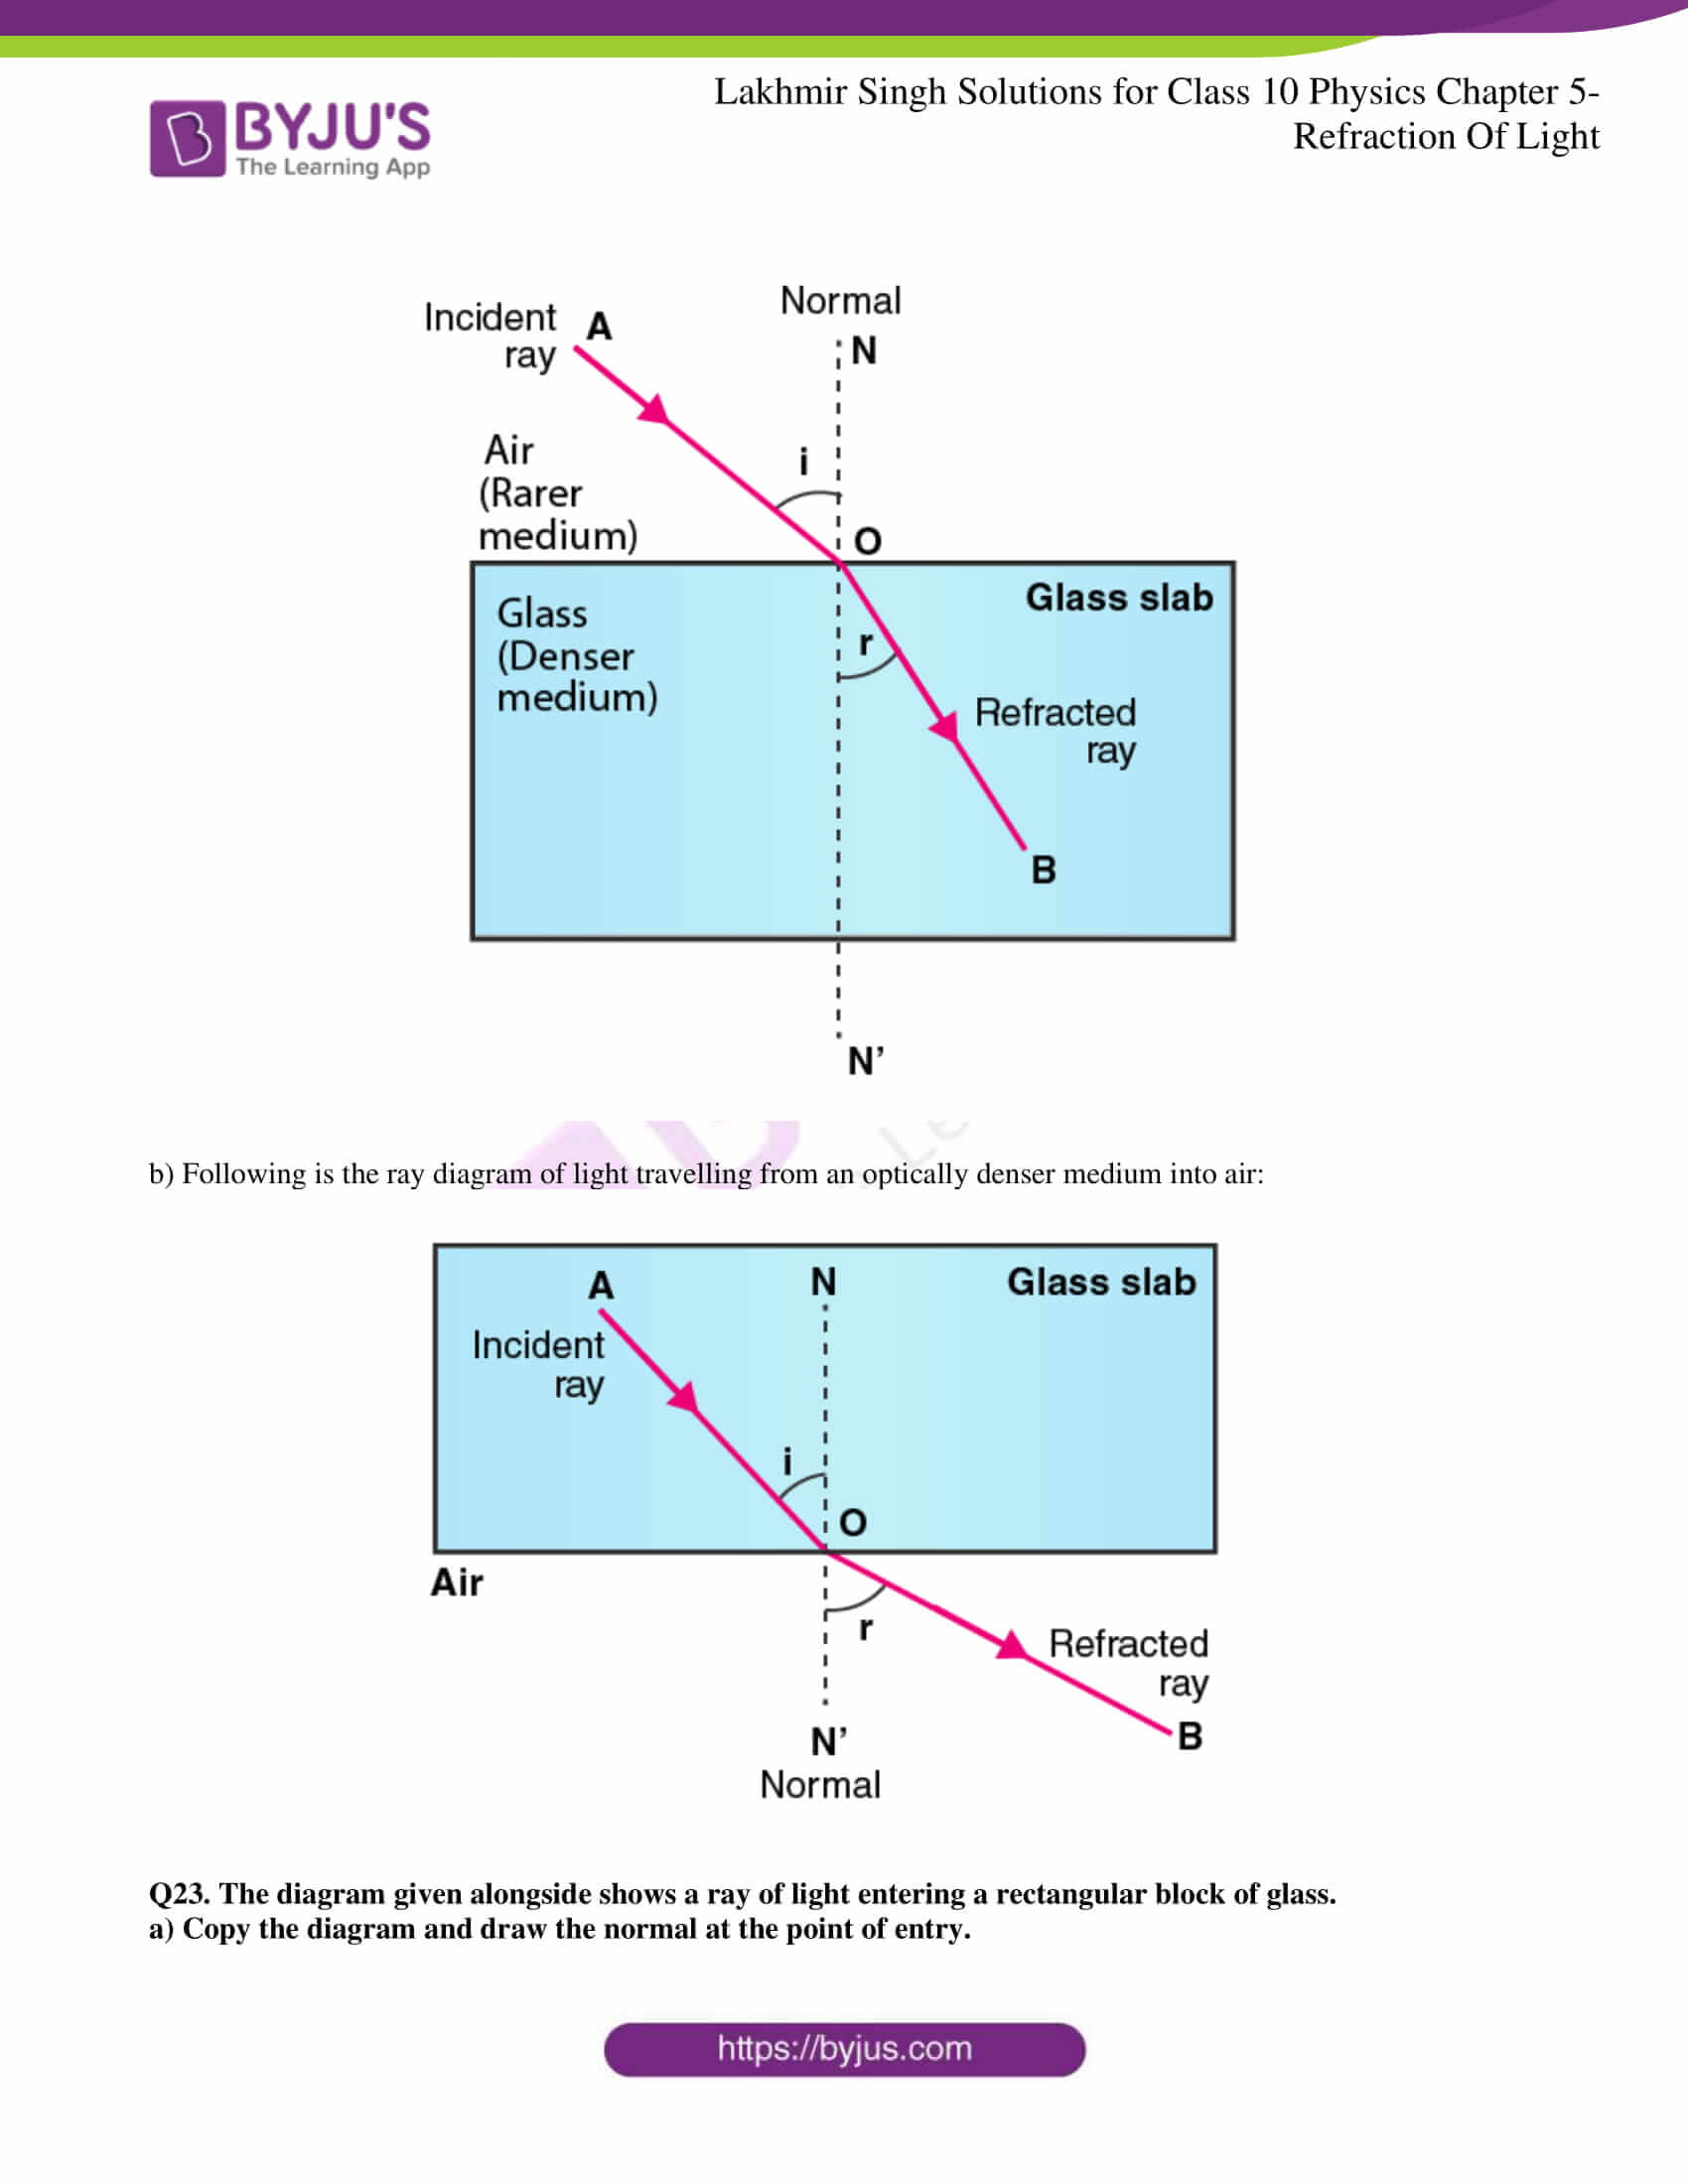 lakhmir singh solutions class 10 physics chapter 5 07